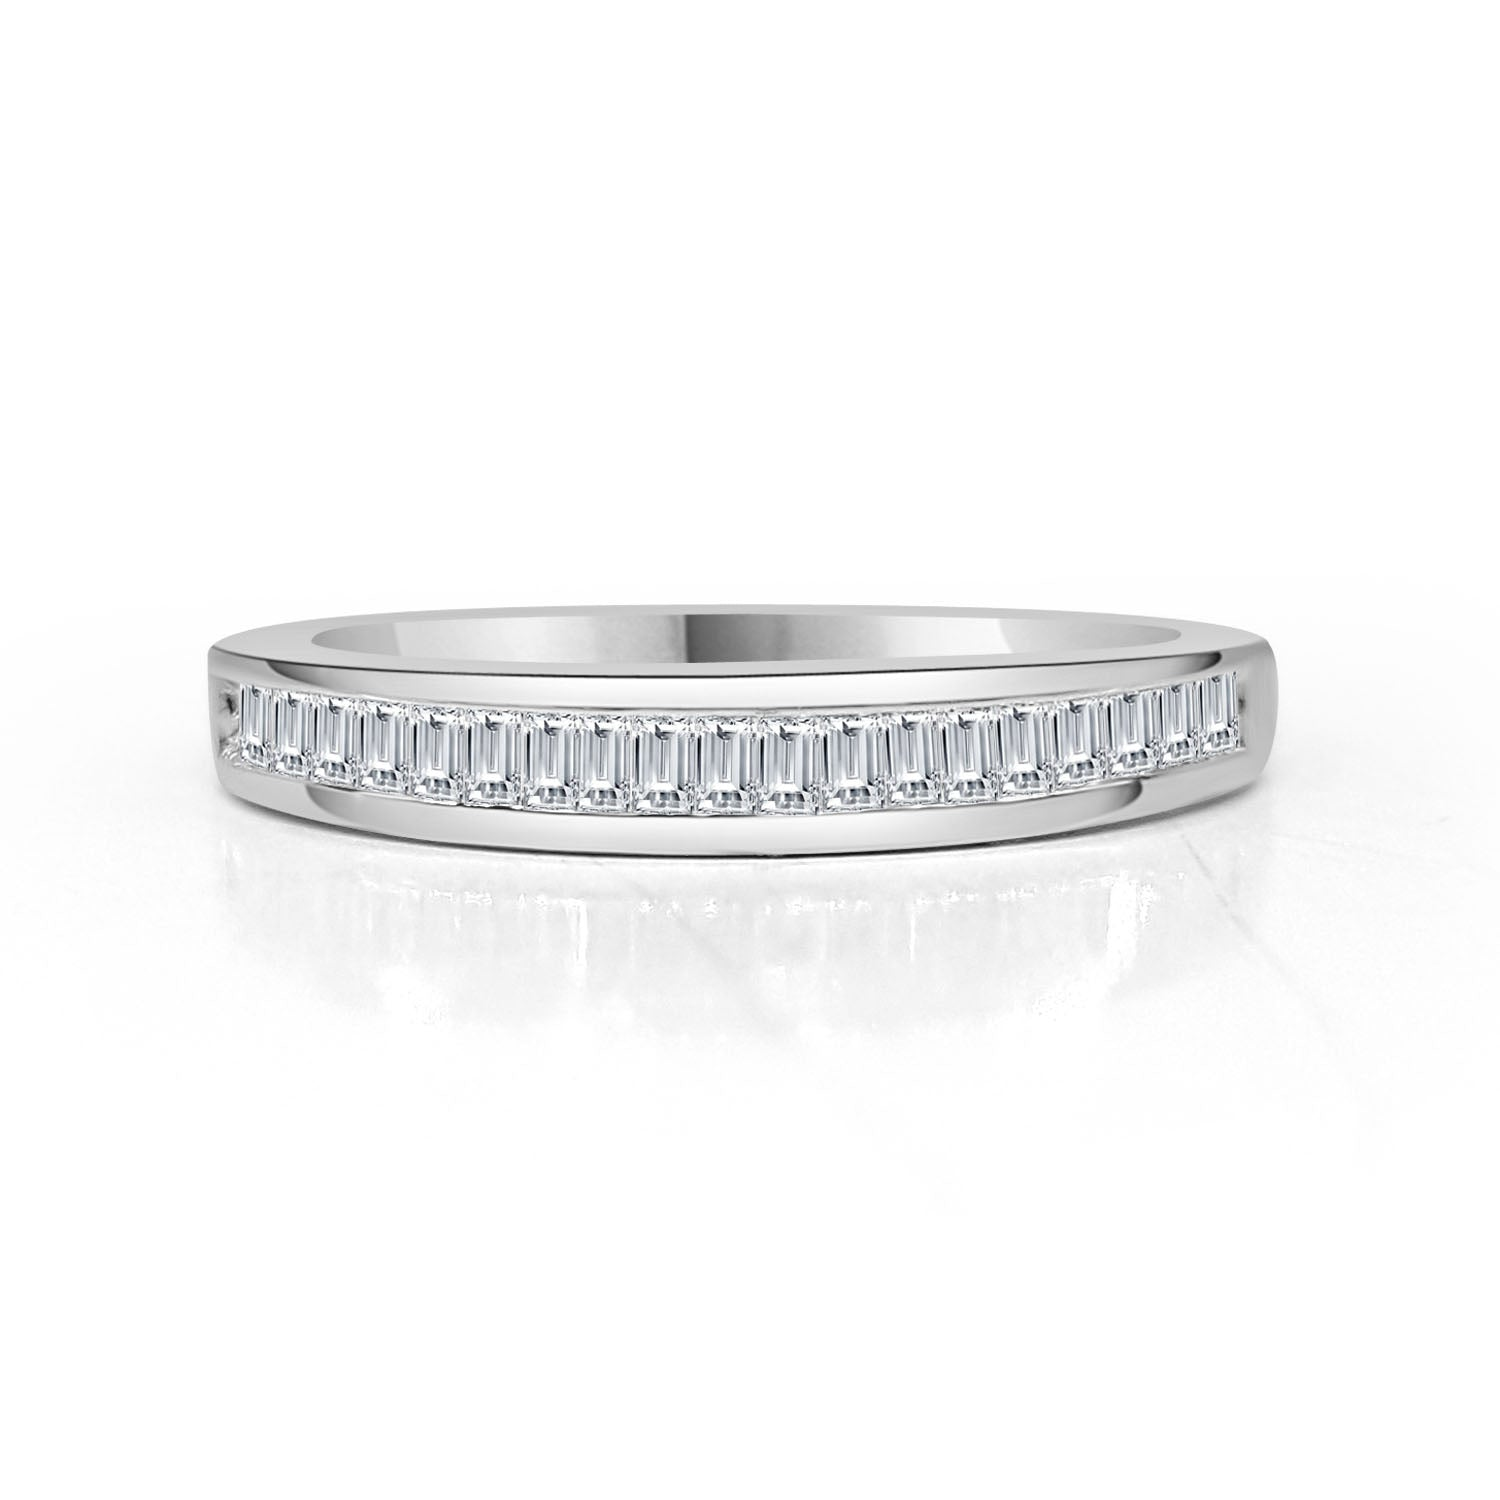 wedding baguette her band ring the blog diamond cut bands match stone platinum in round gemplatinum to com style